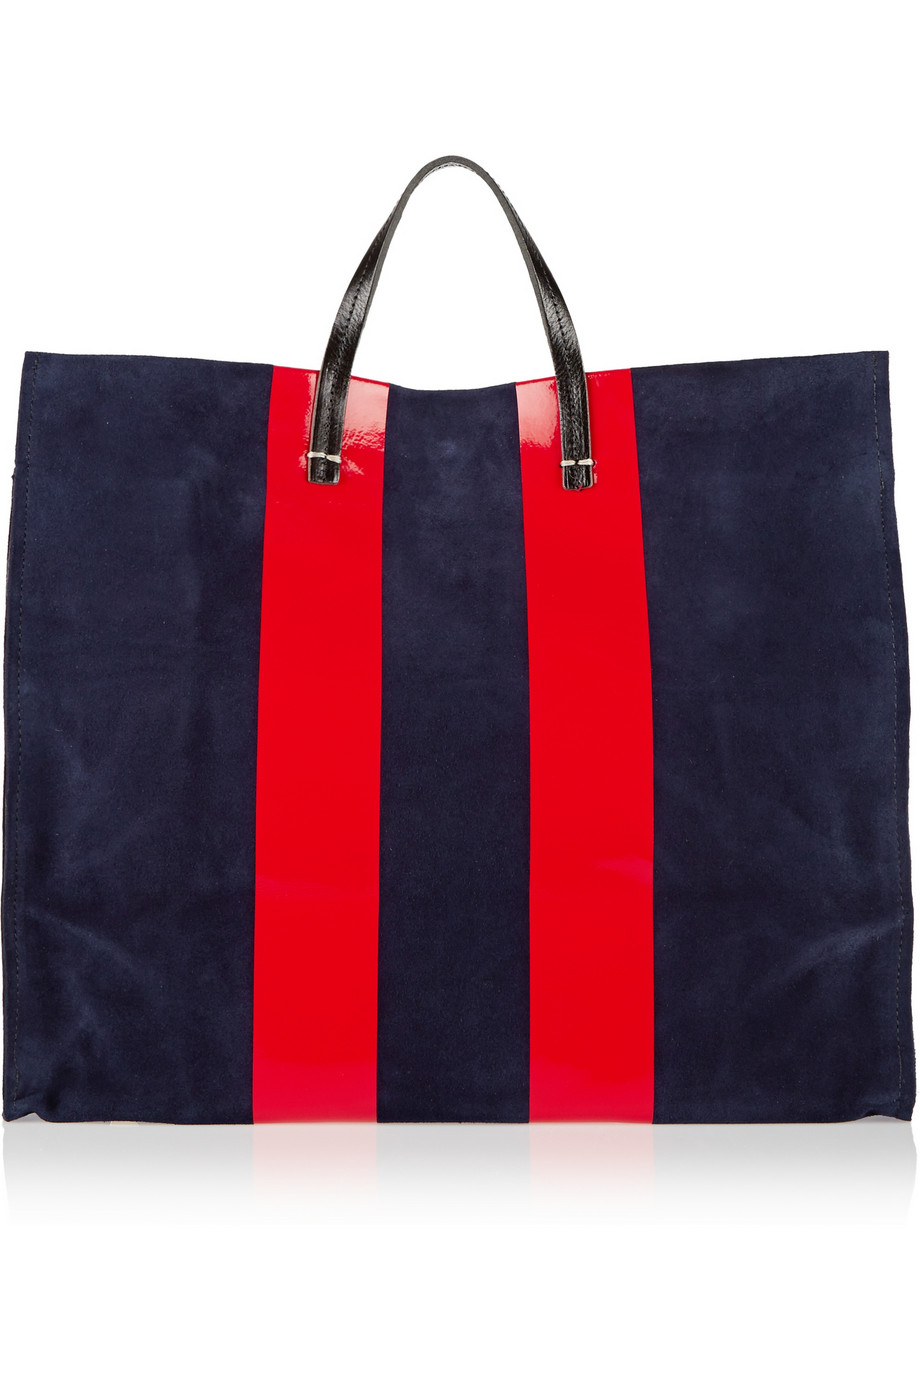 Clare V  bag - was $485, now $291